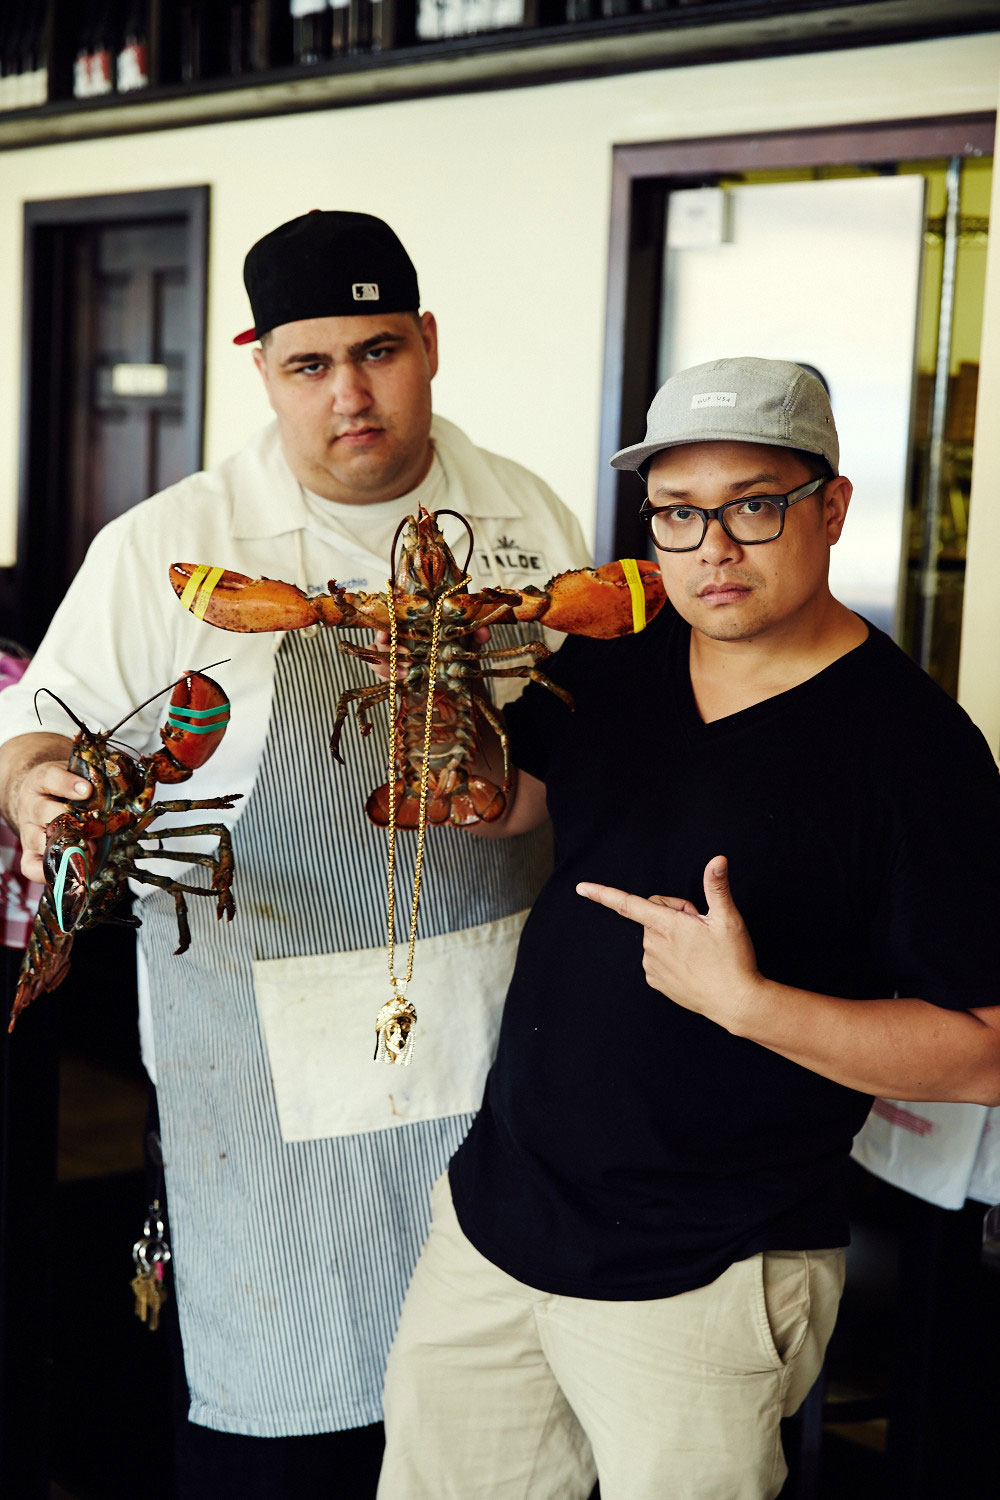 dale-with-lobster